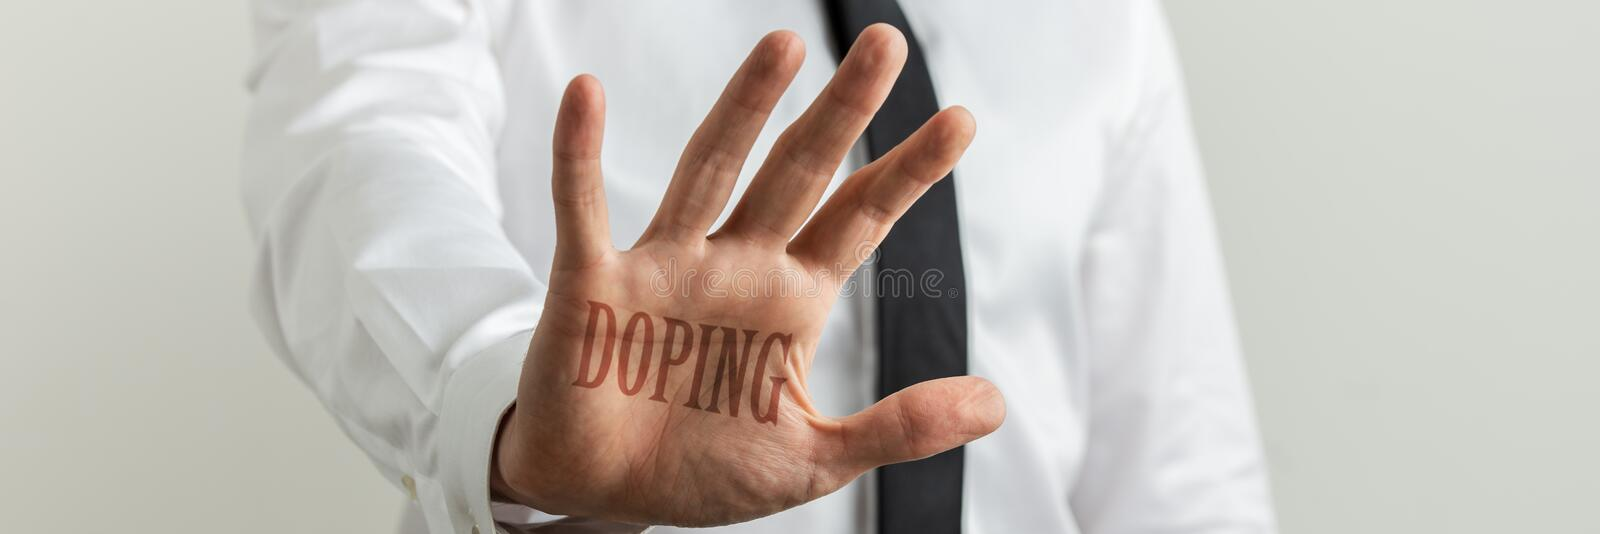 Stop doping sign stock image